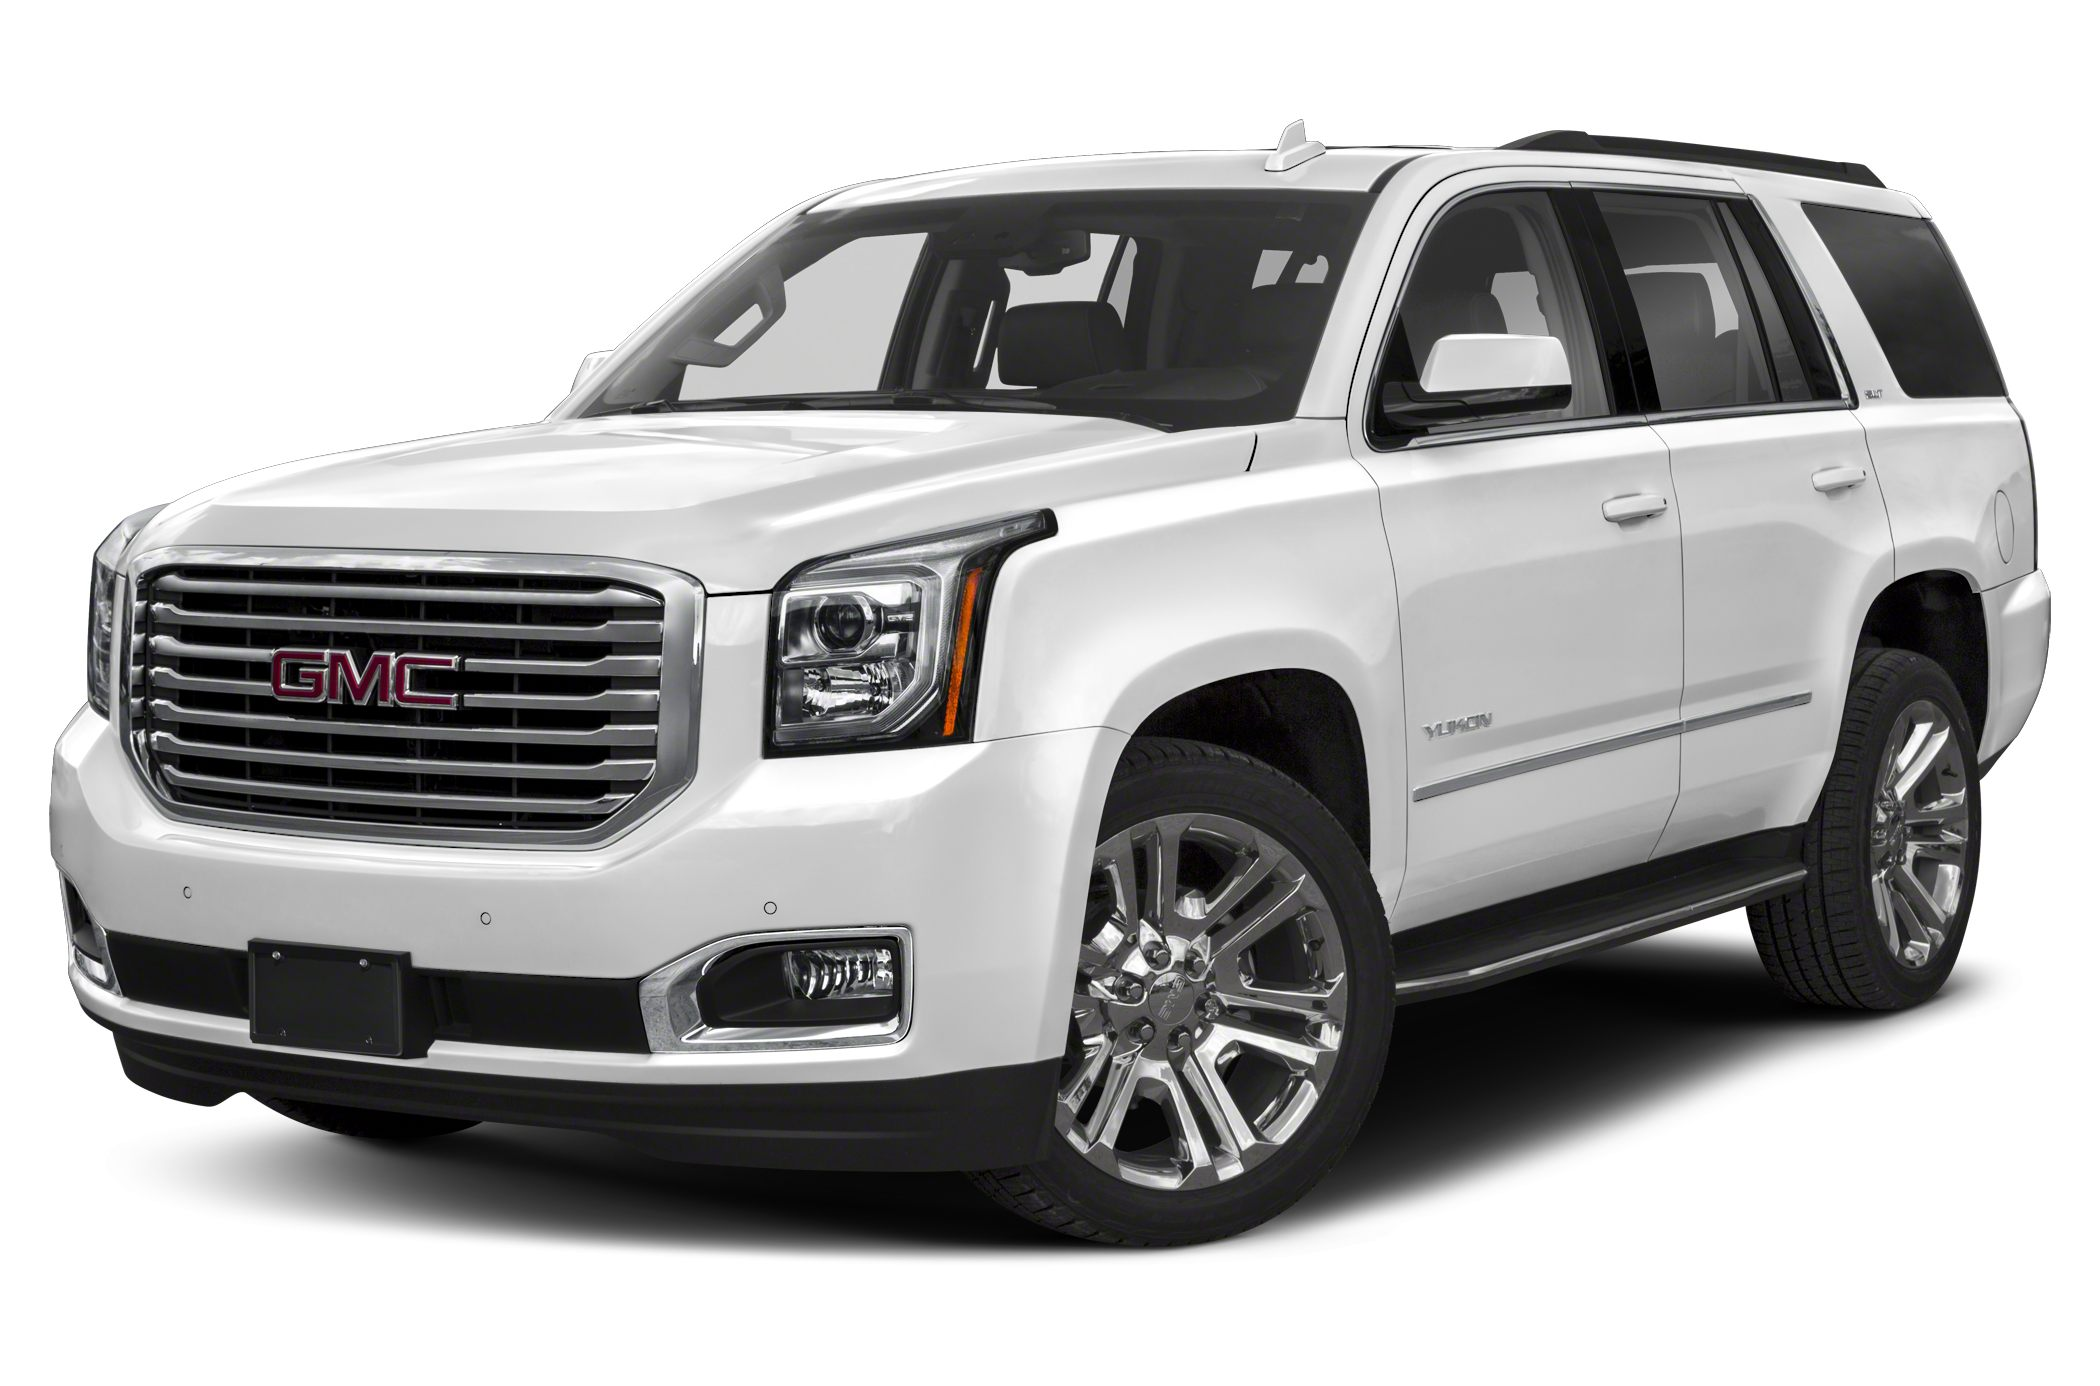 2018 Gmc Yukon Recalls